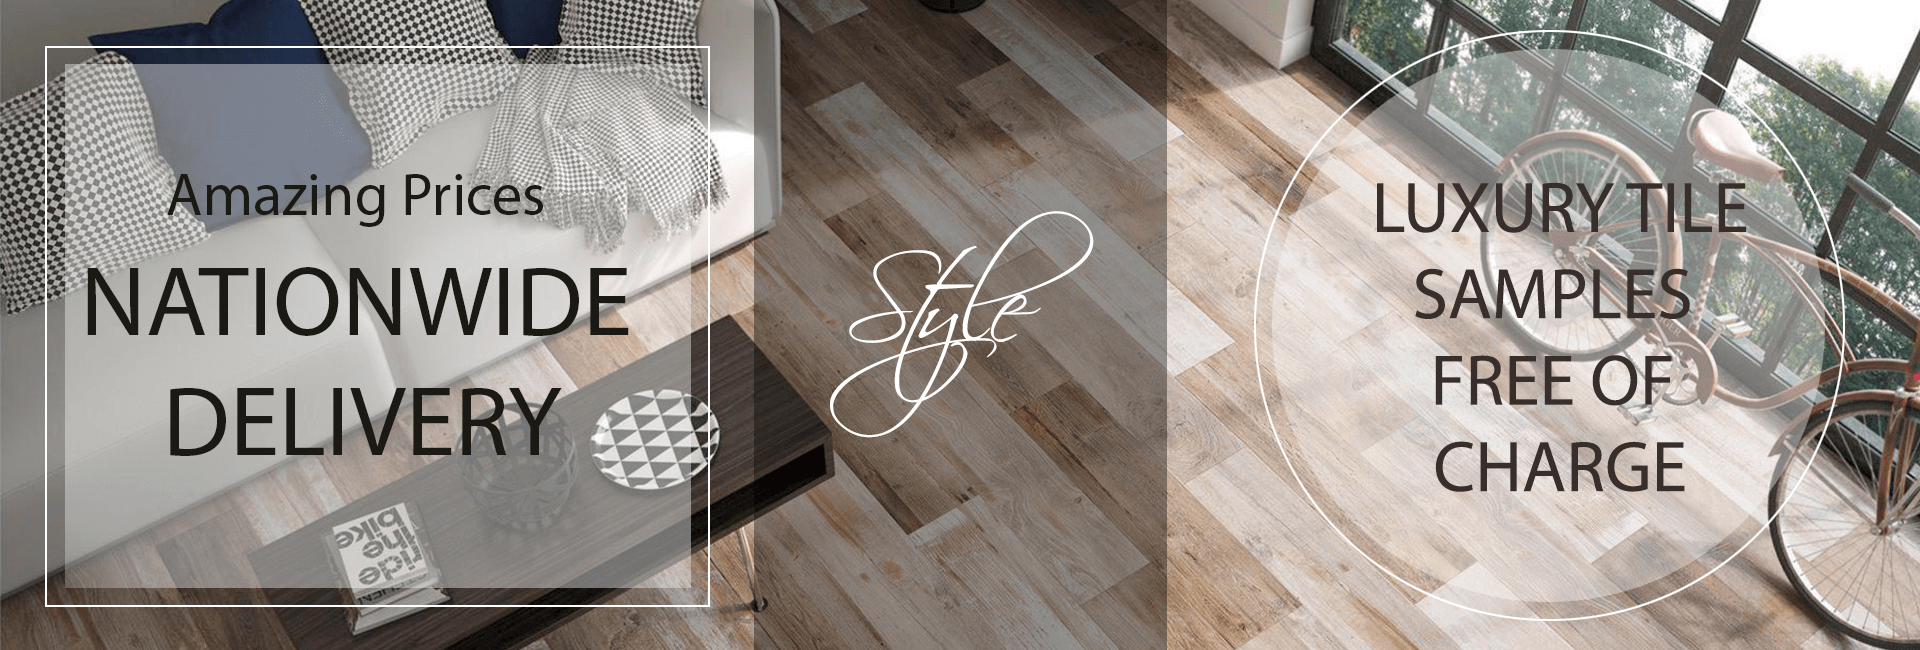 Mazzanna Tiles - Belle carrelage i feel wood